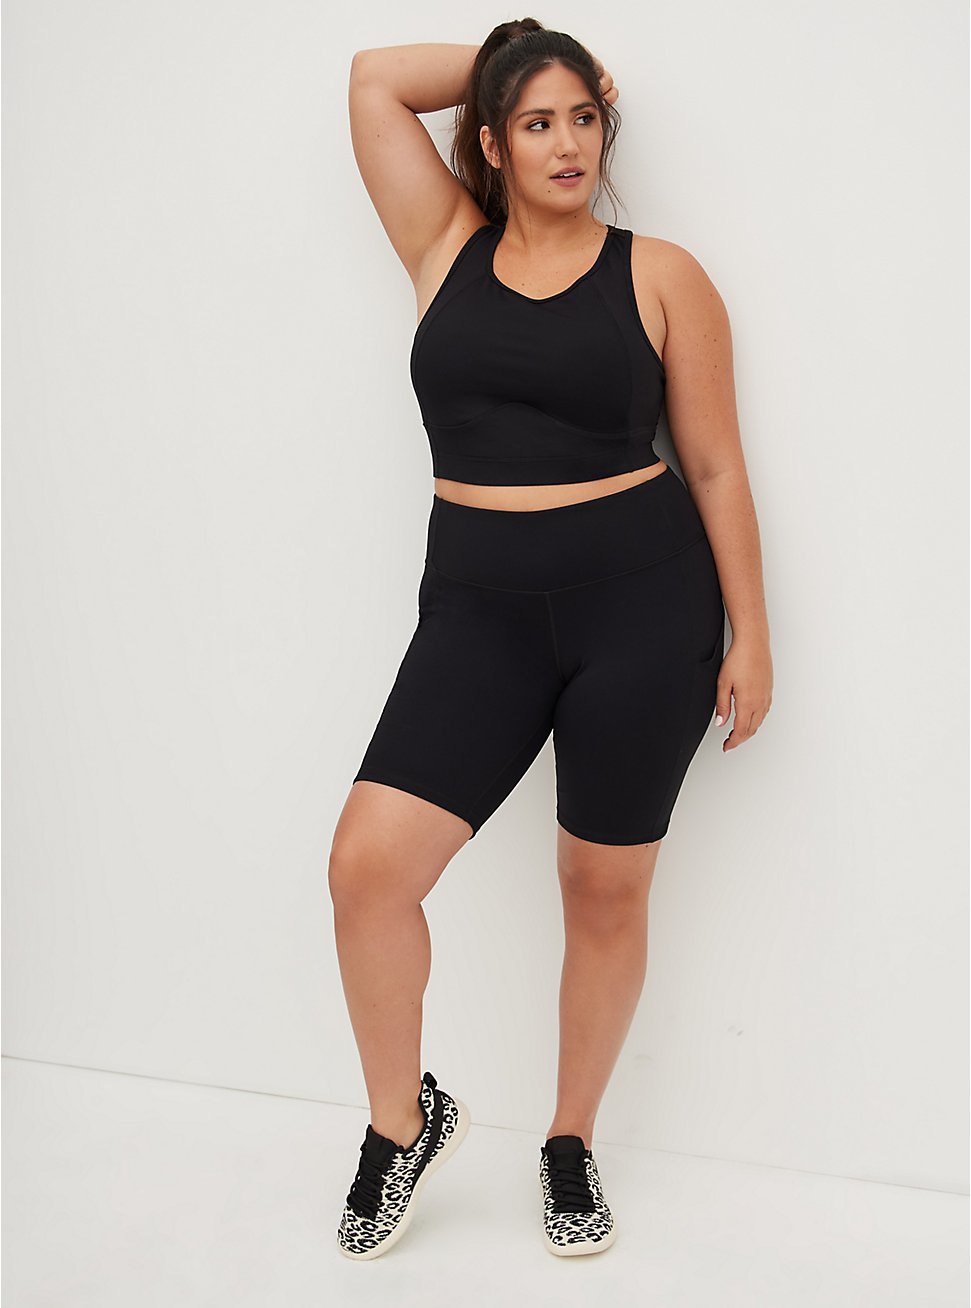 Plus Size Black Wicking Active Bike Short with Pockets, DEEP BLACK, hi-res